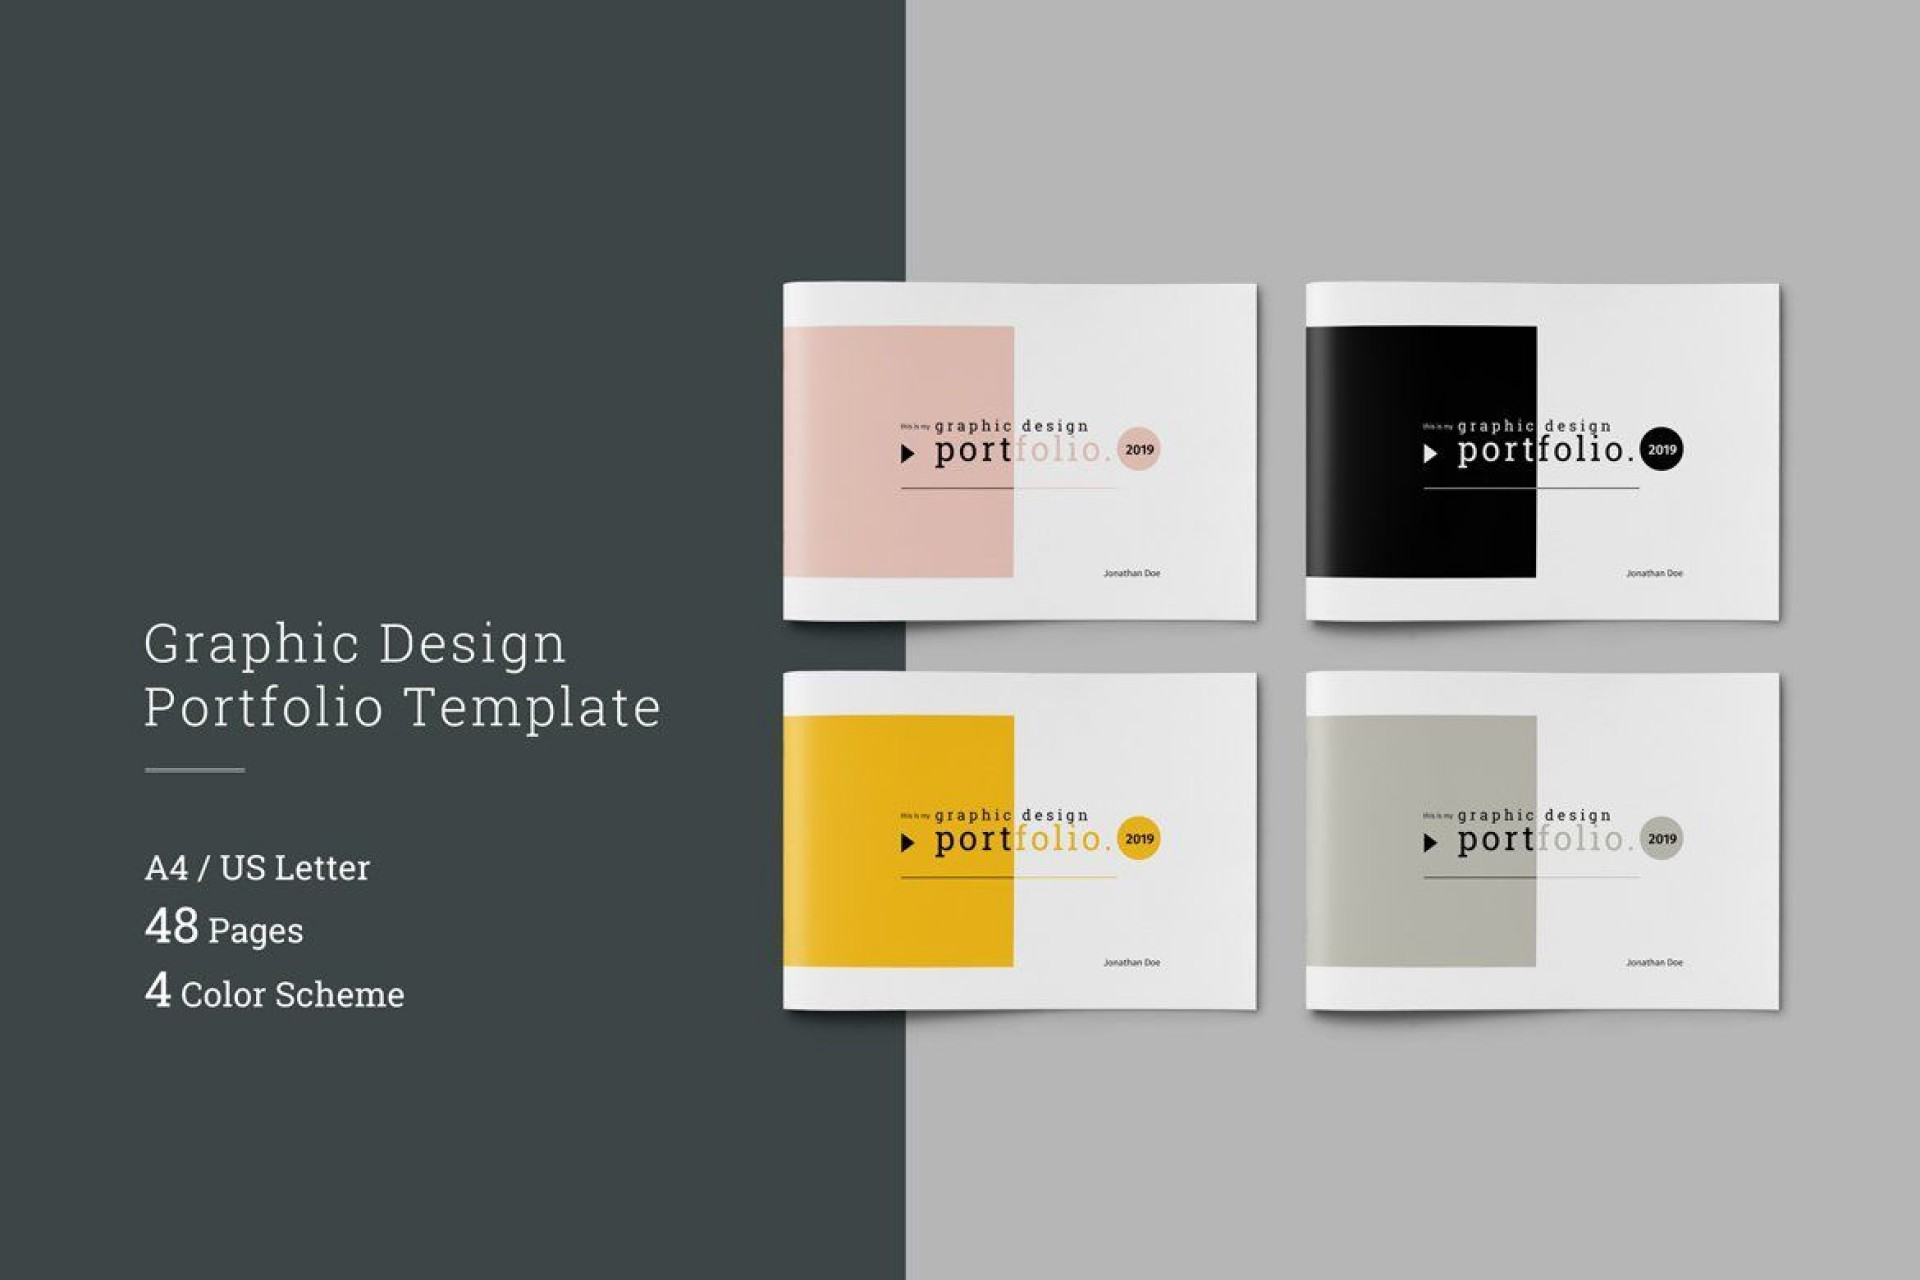 000 Surprising Interior Design Portfolio Template Sample  Ppt Free Download Layout1920